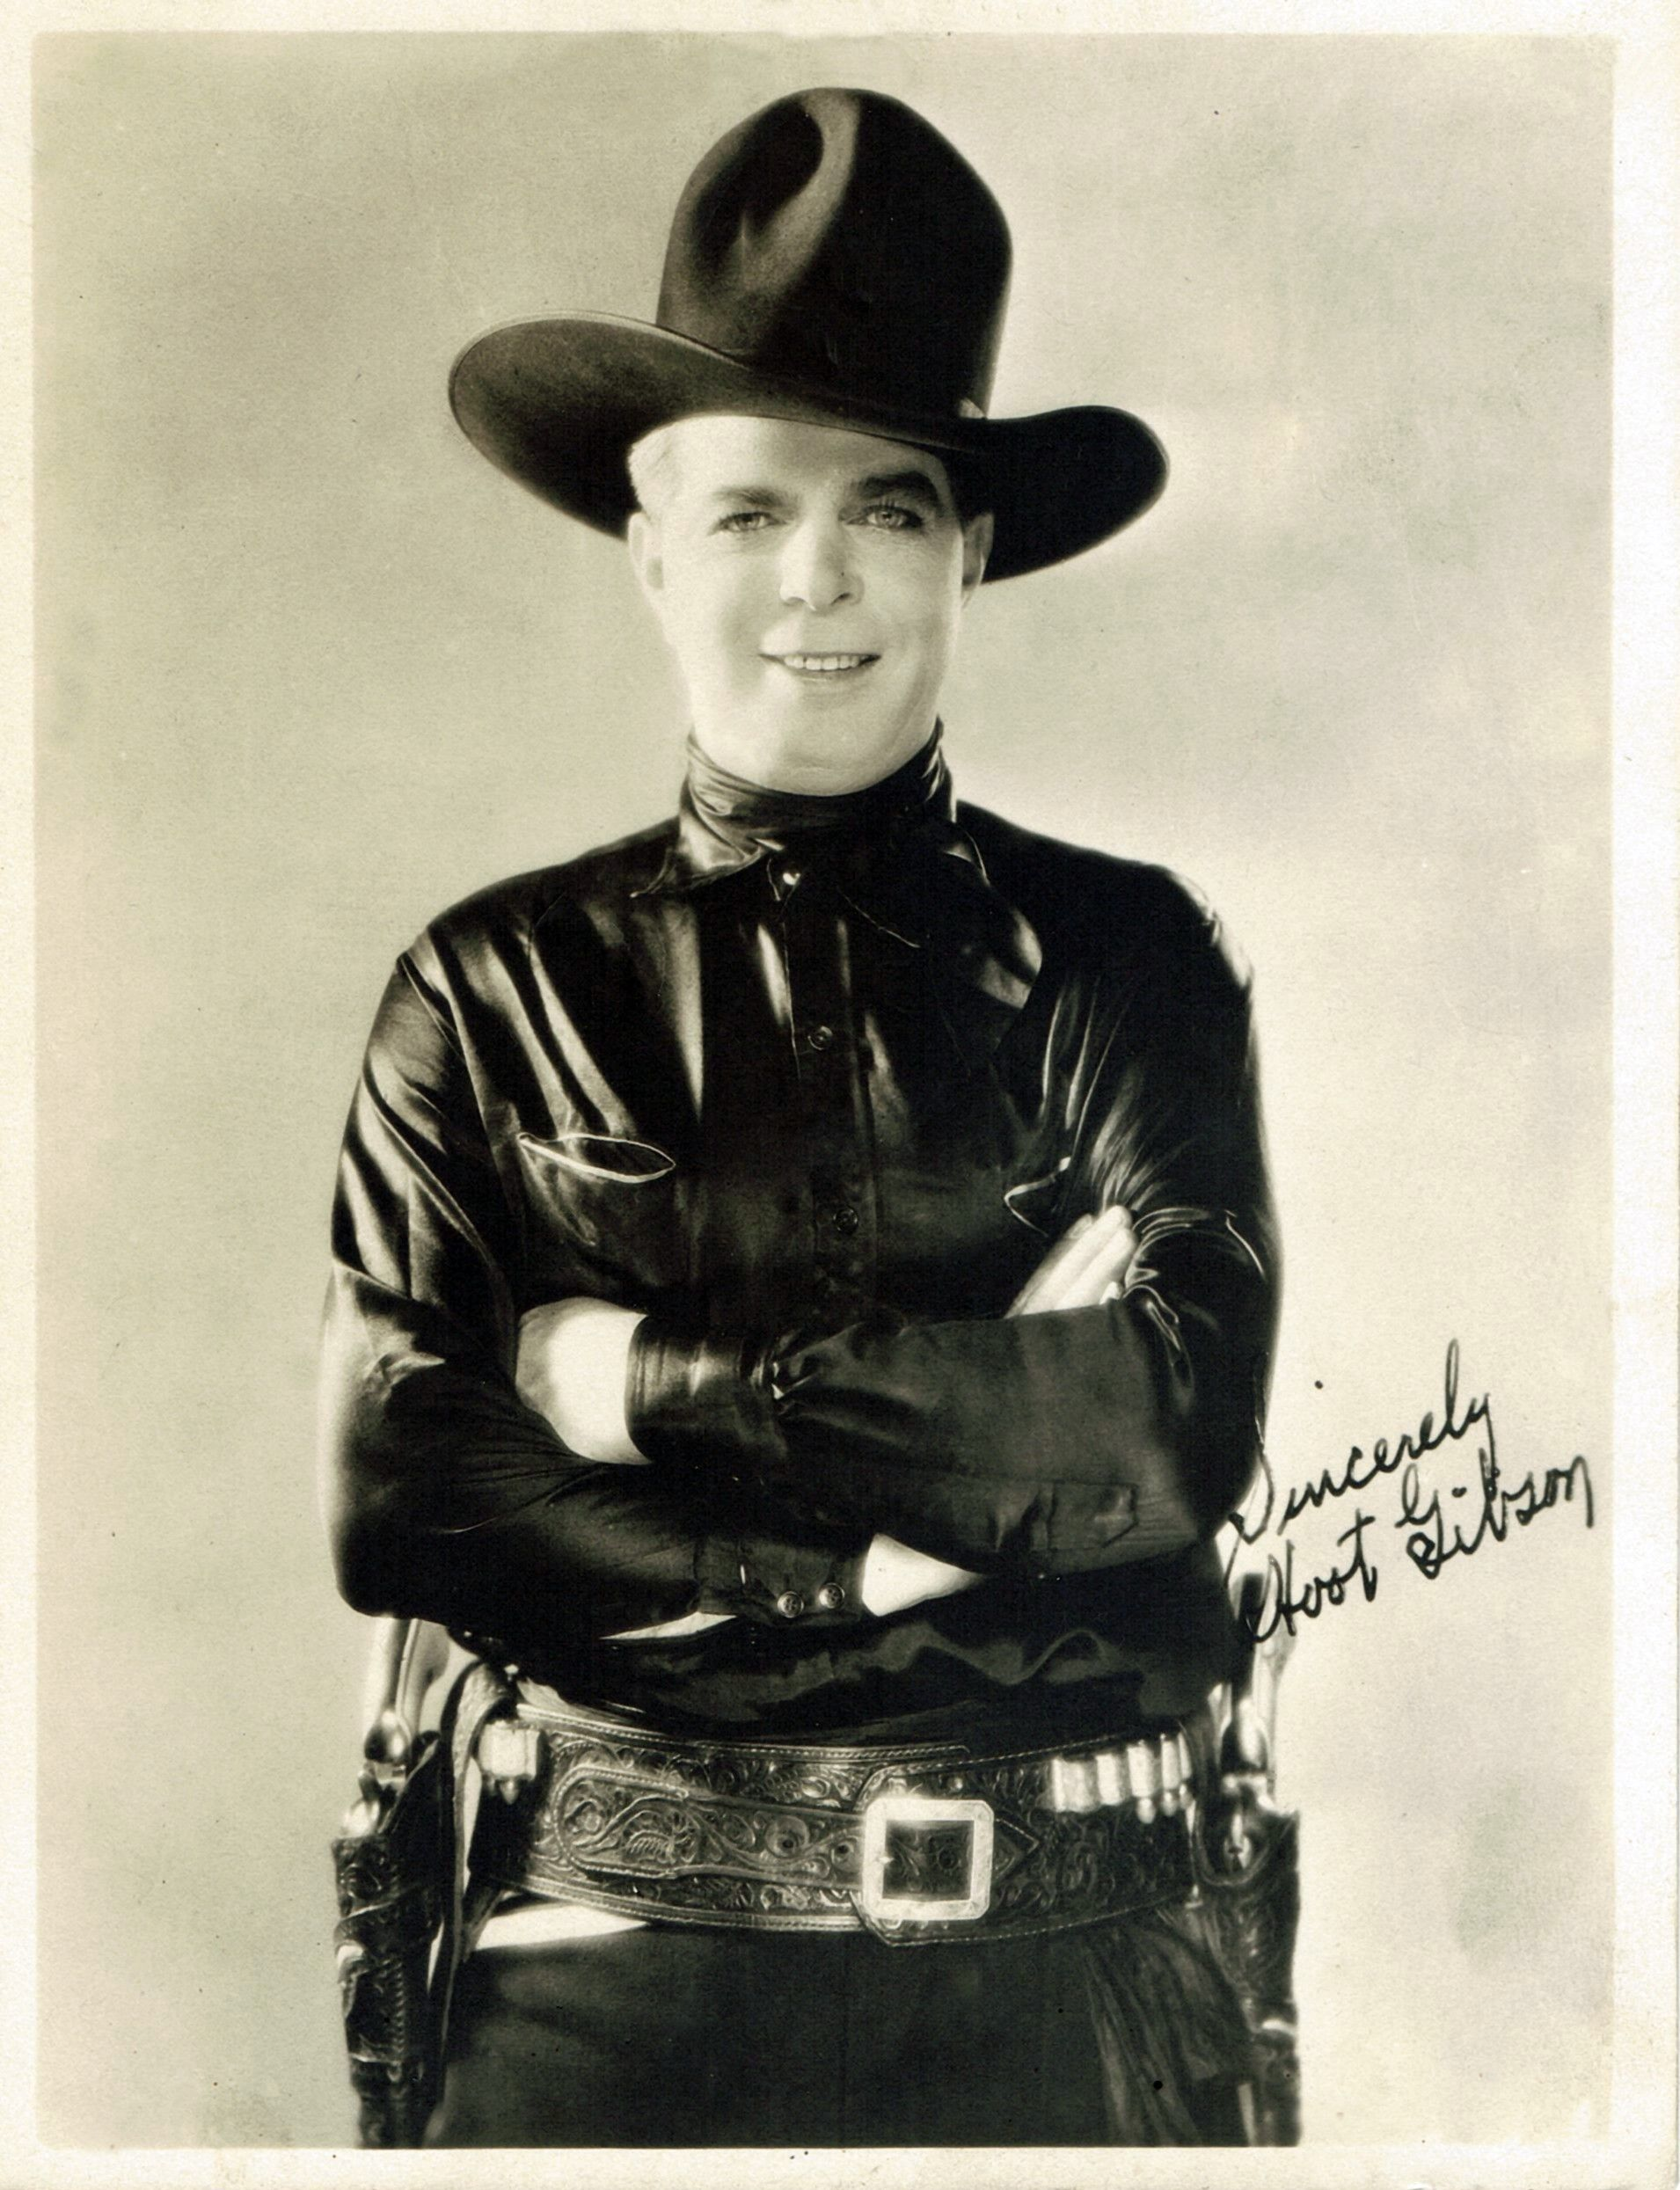 Hoot Gibson 1892 1962 Was An American Rodeo Champion And A Pioneer Cowboy Film Actor From The 1920s Through The Cowboy Films Hero Movie Old Western Movies